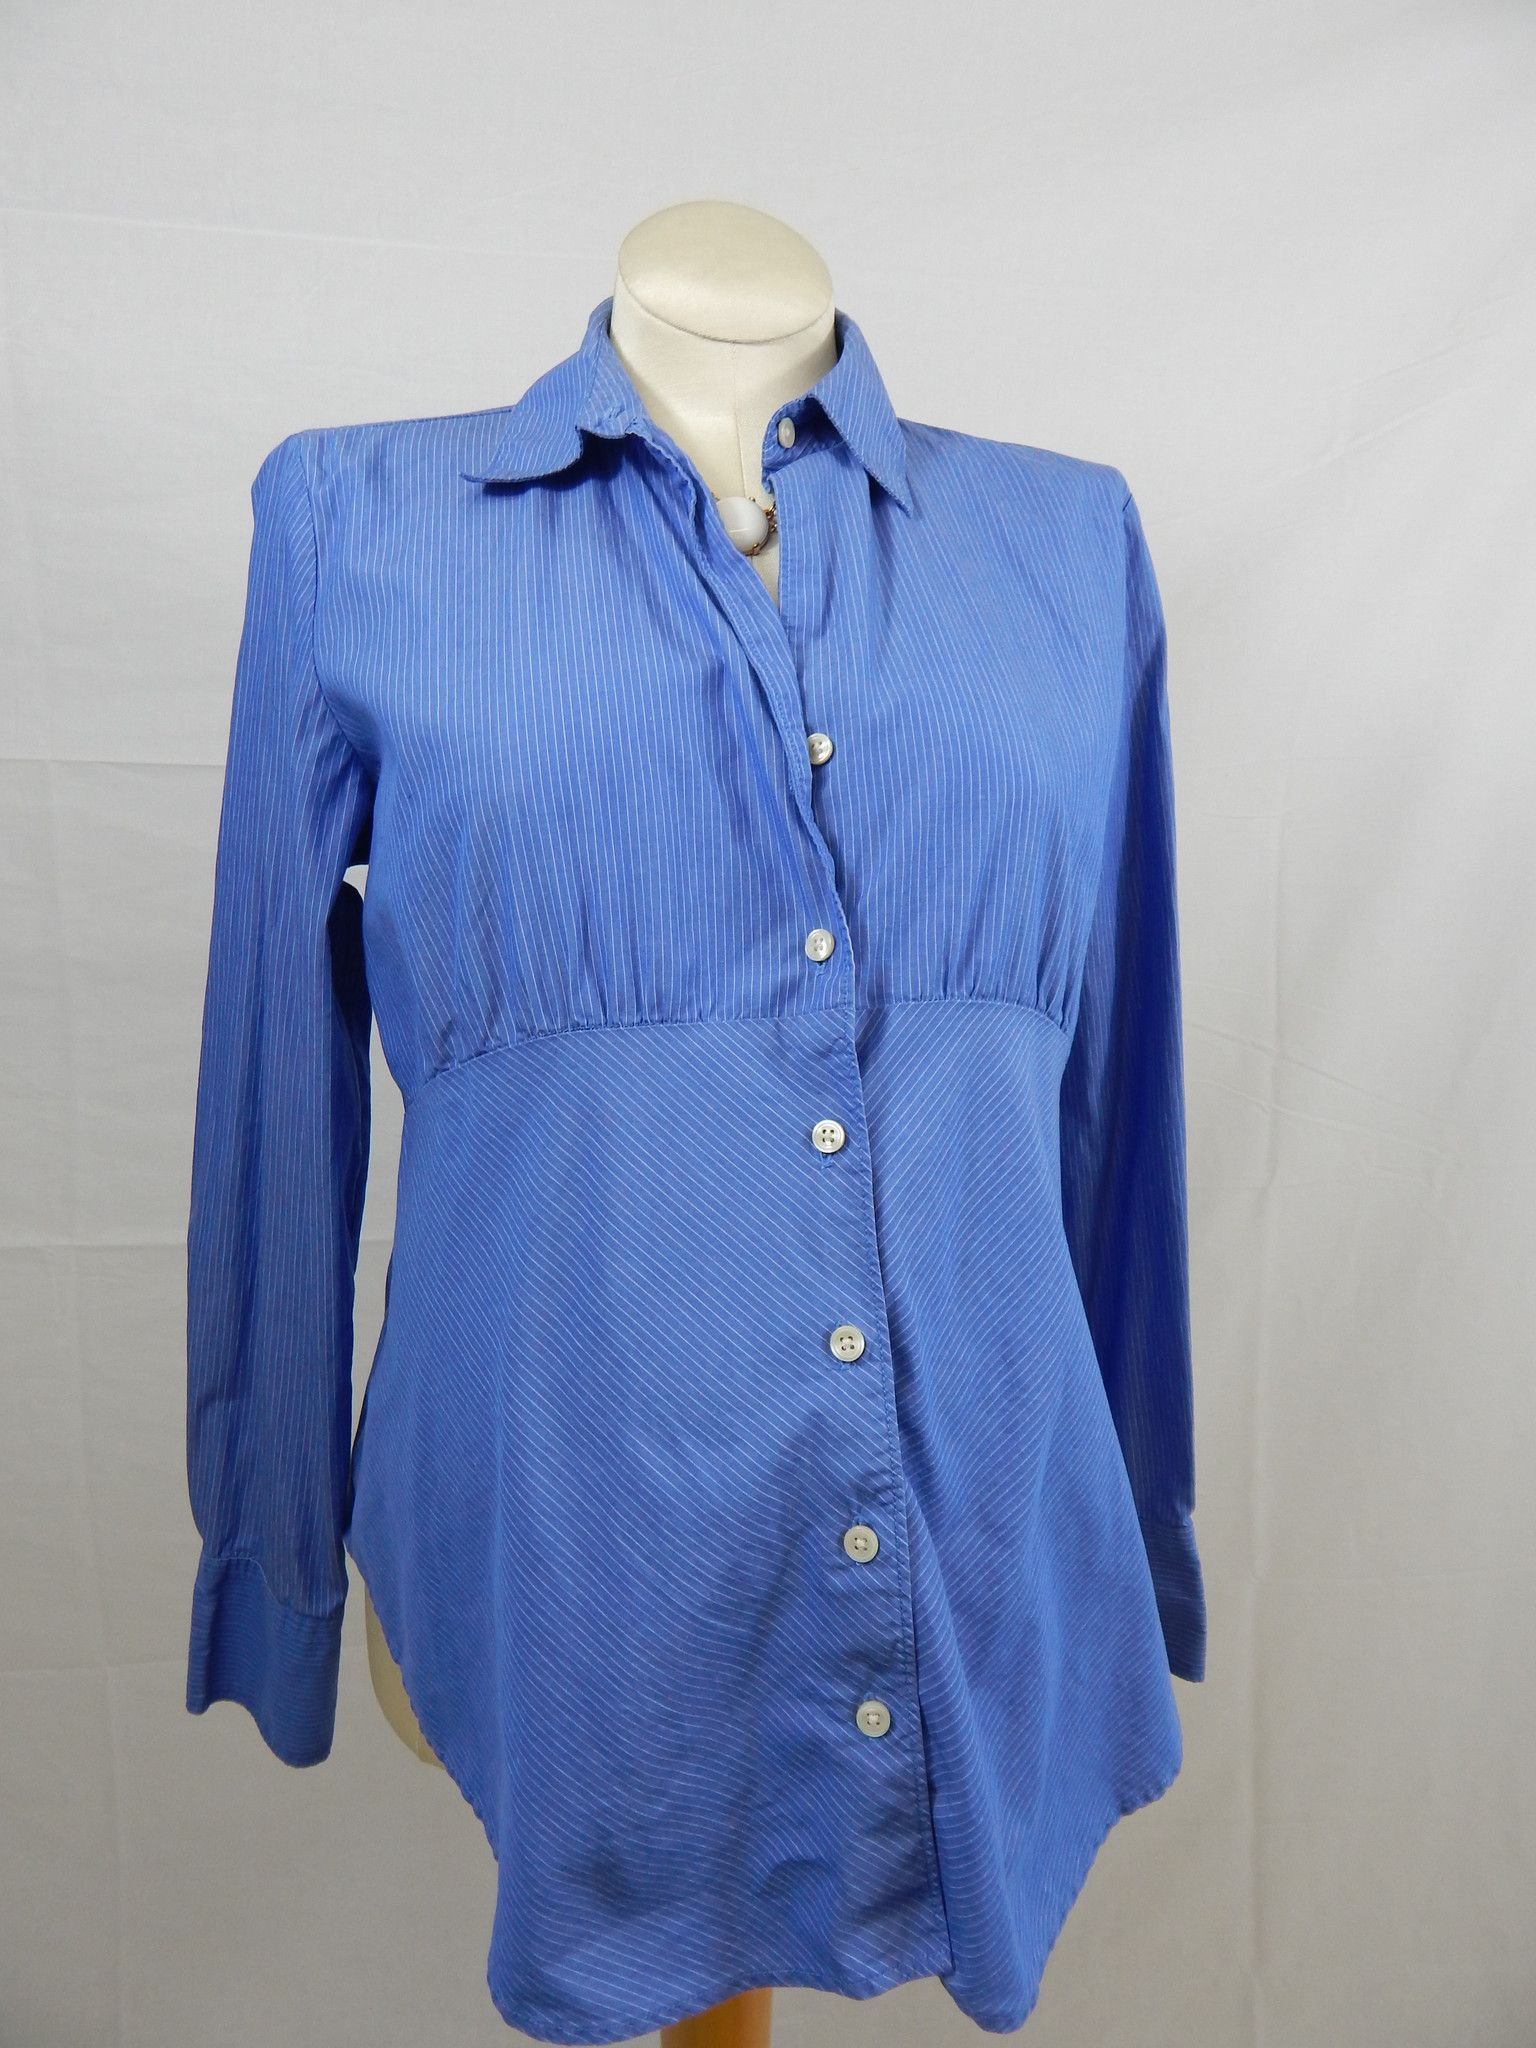 Blue & White Striped Button Up Long Sleeve Blouse-Large